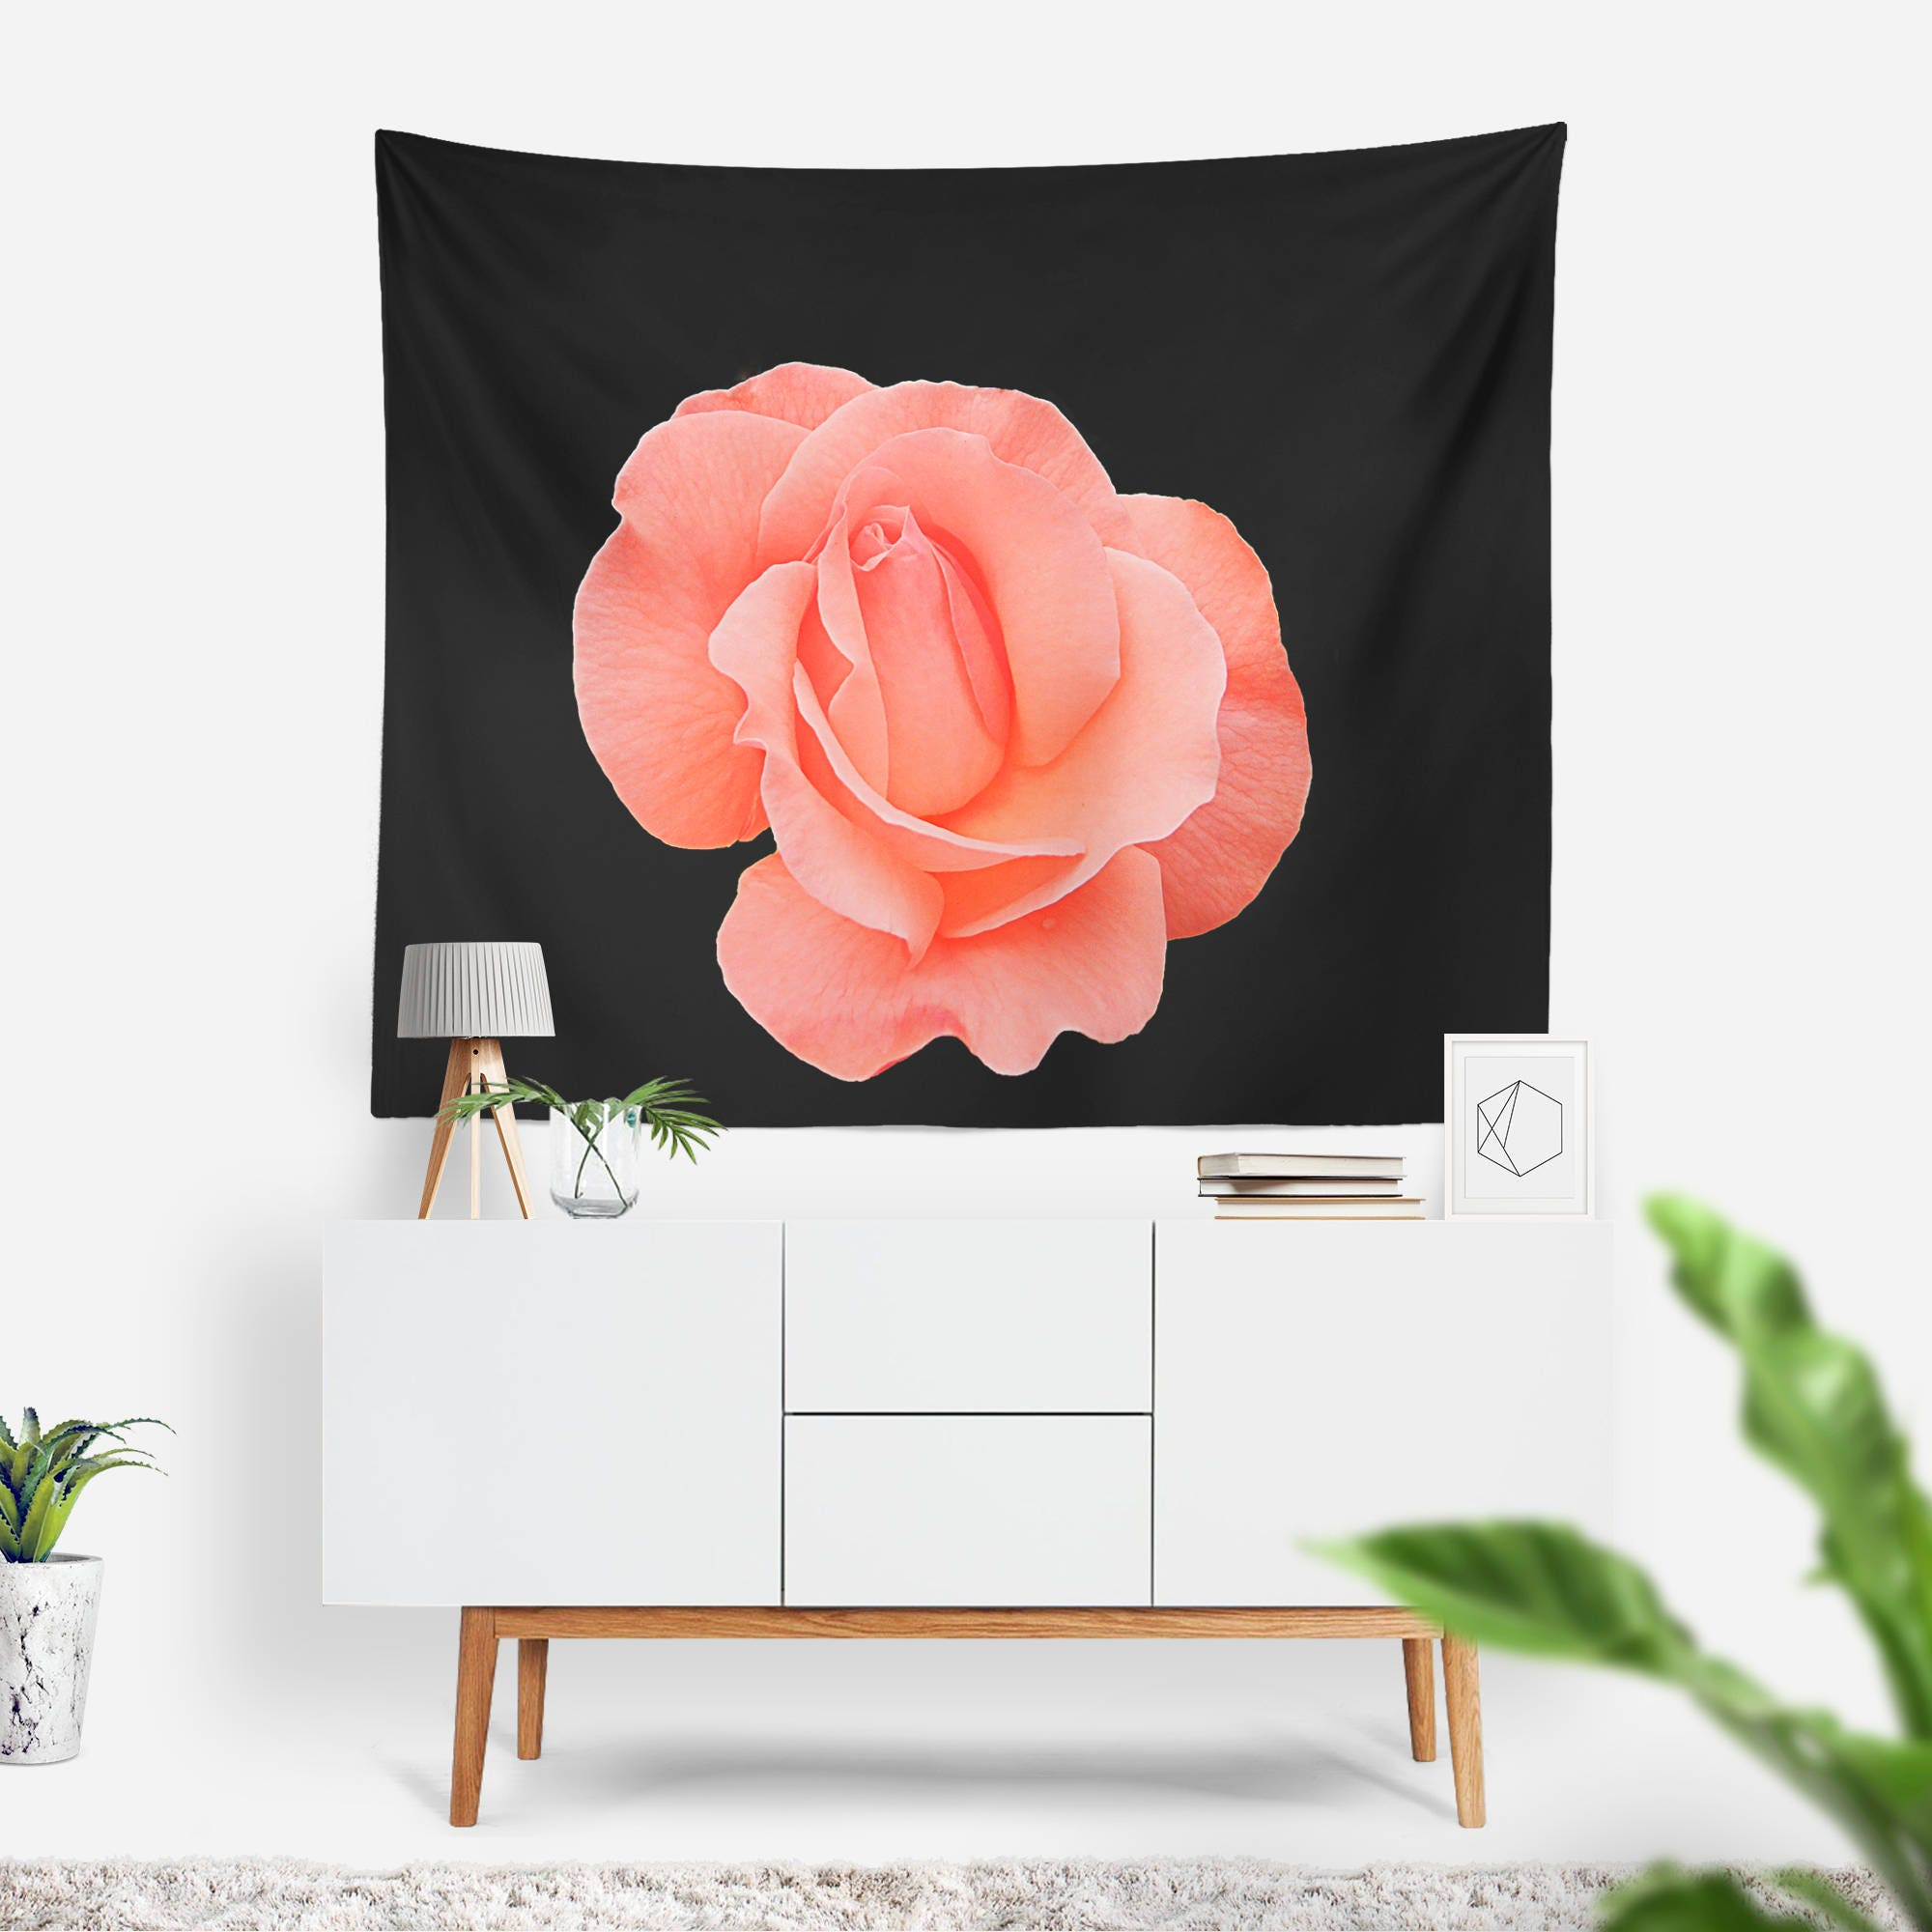 decoration hibiscus elegant of collection mugunghwa decor wall best sharon o rose